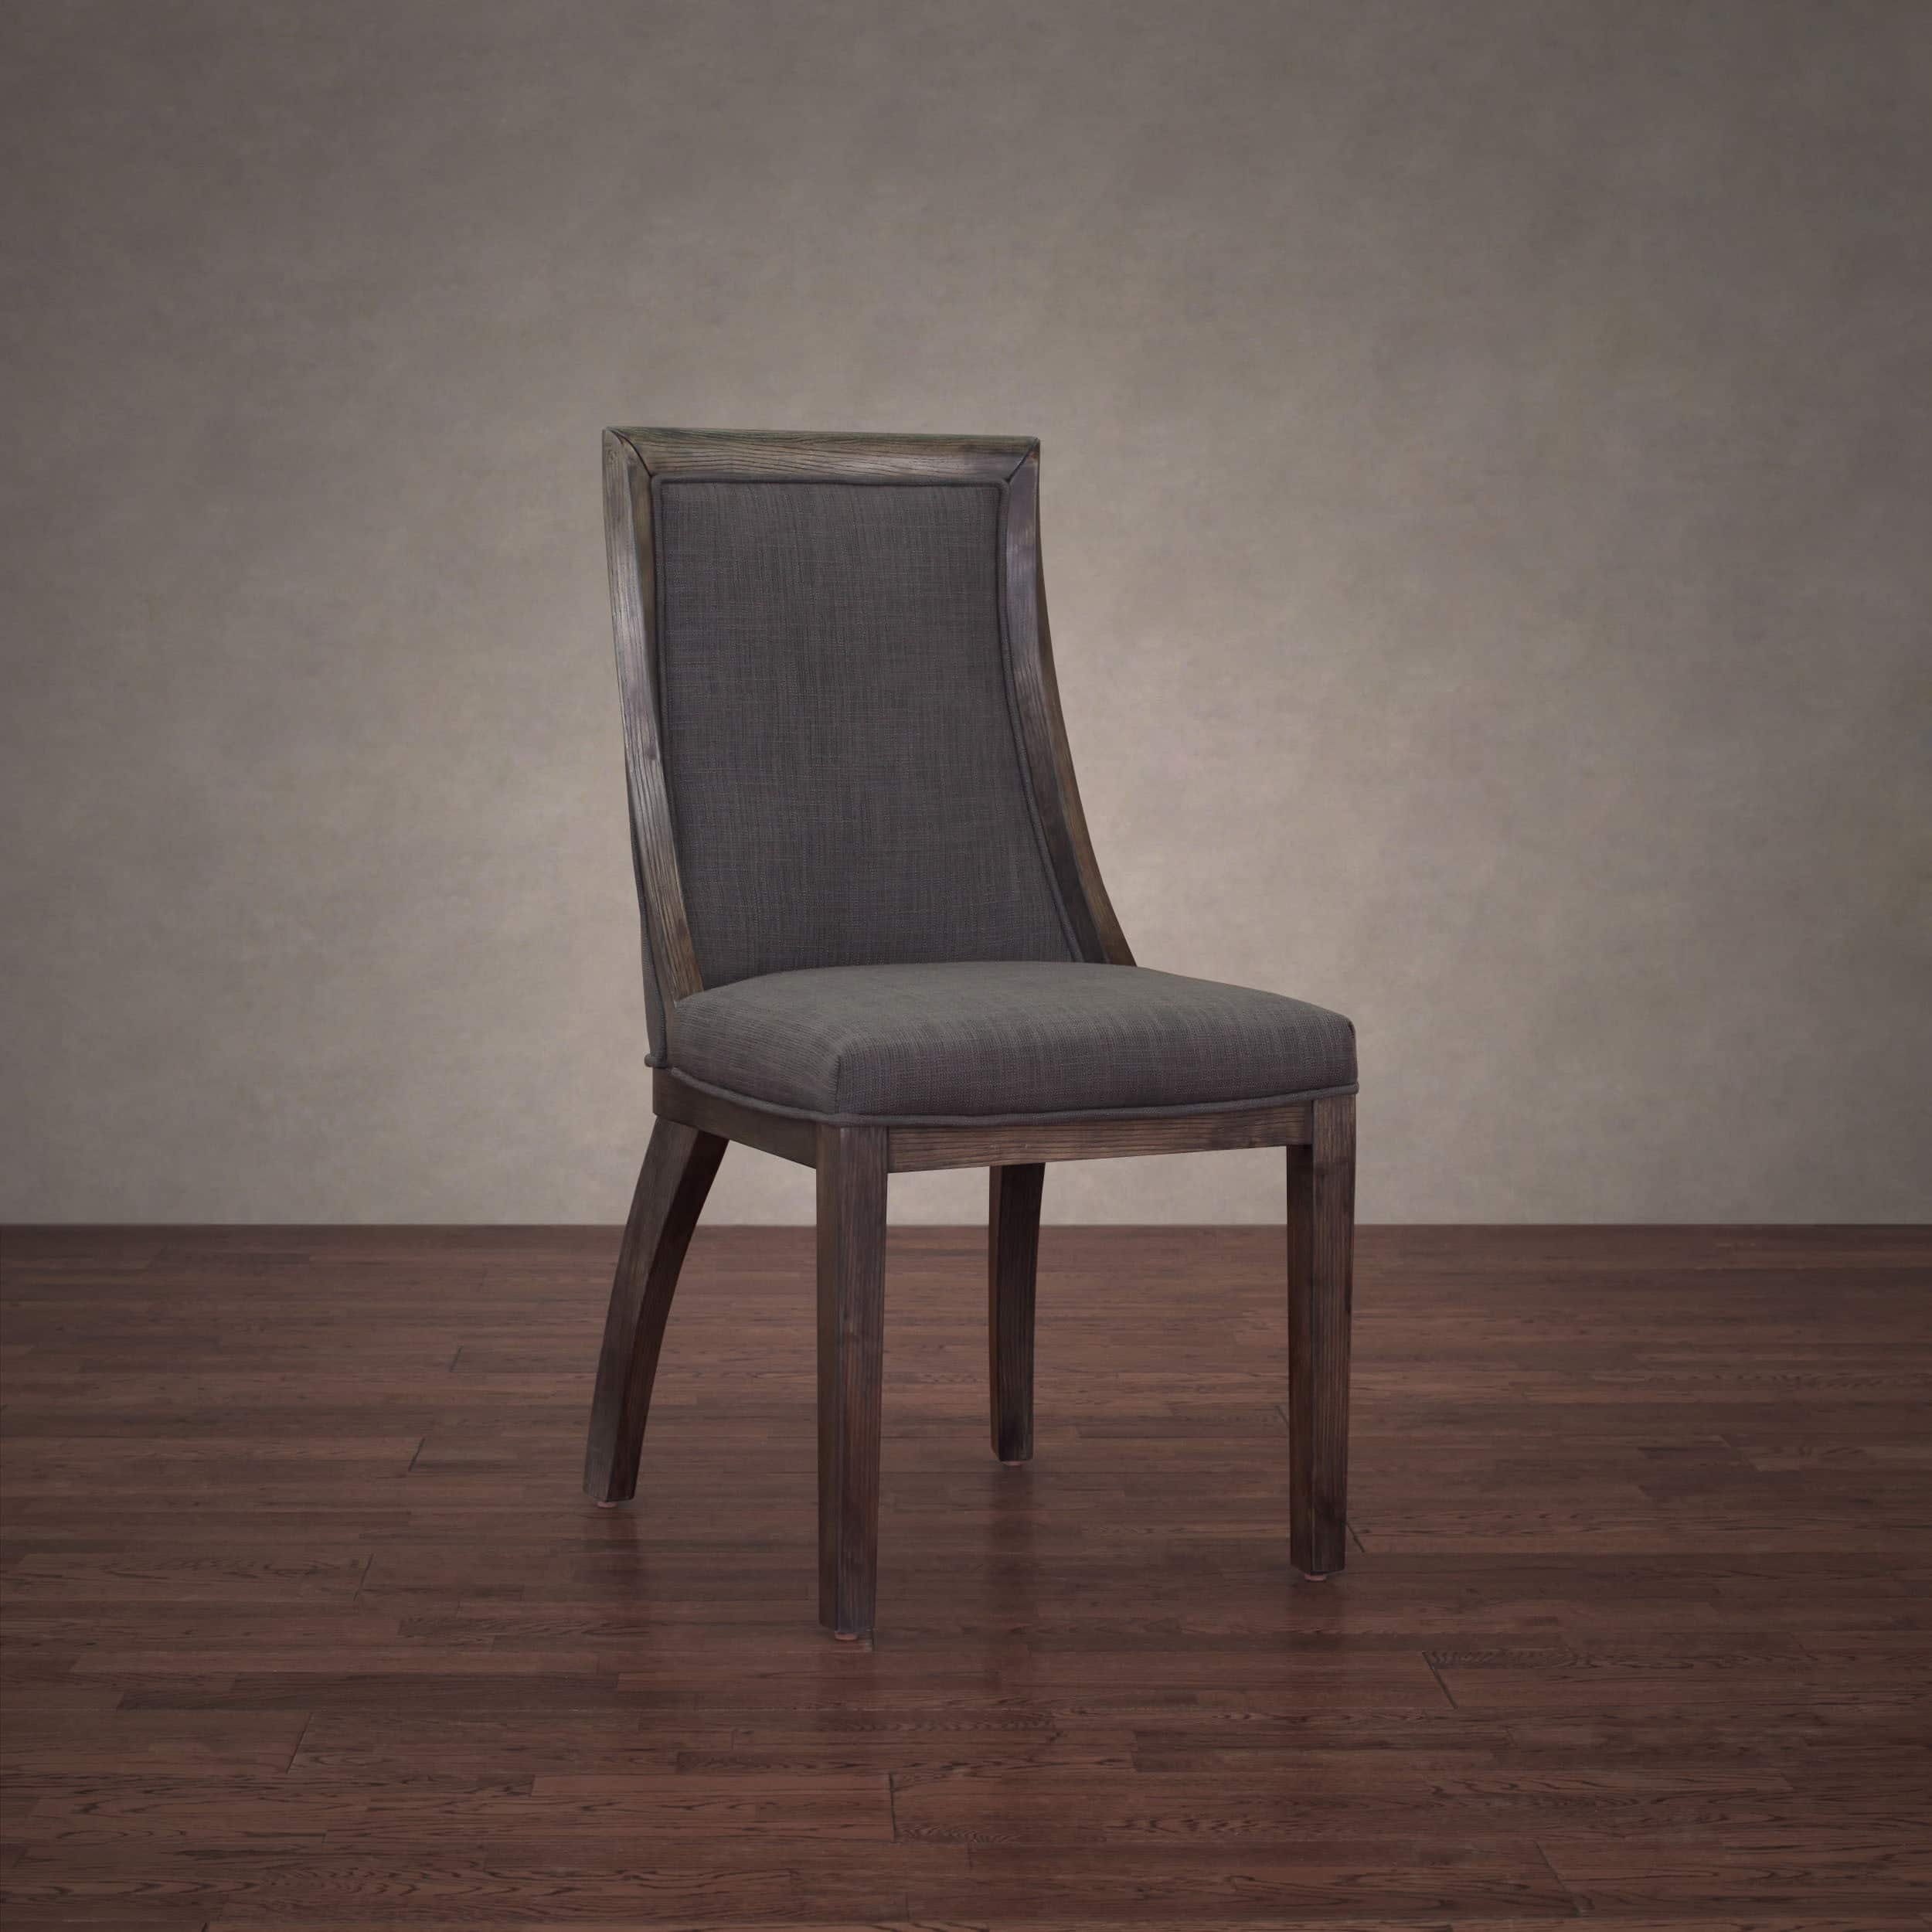 Dining Room Furniture Online: Buy Kitchen & Dining Room Chairs Online At Overstock